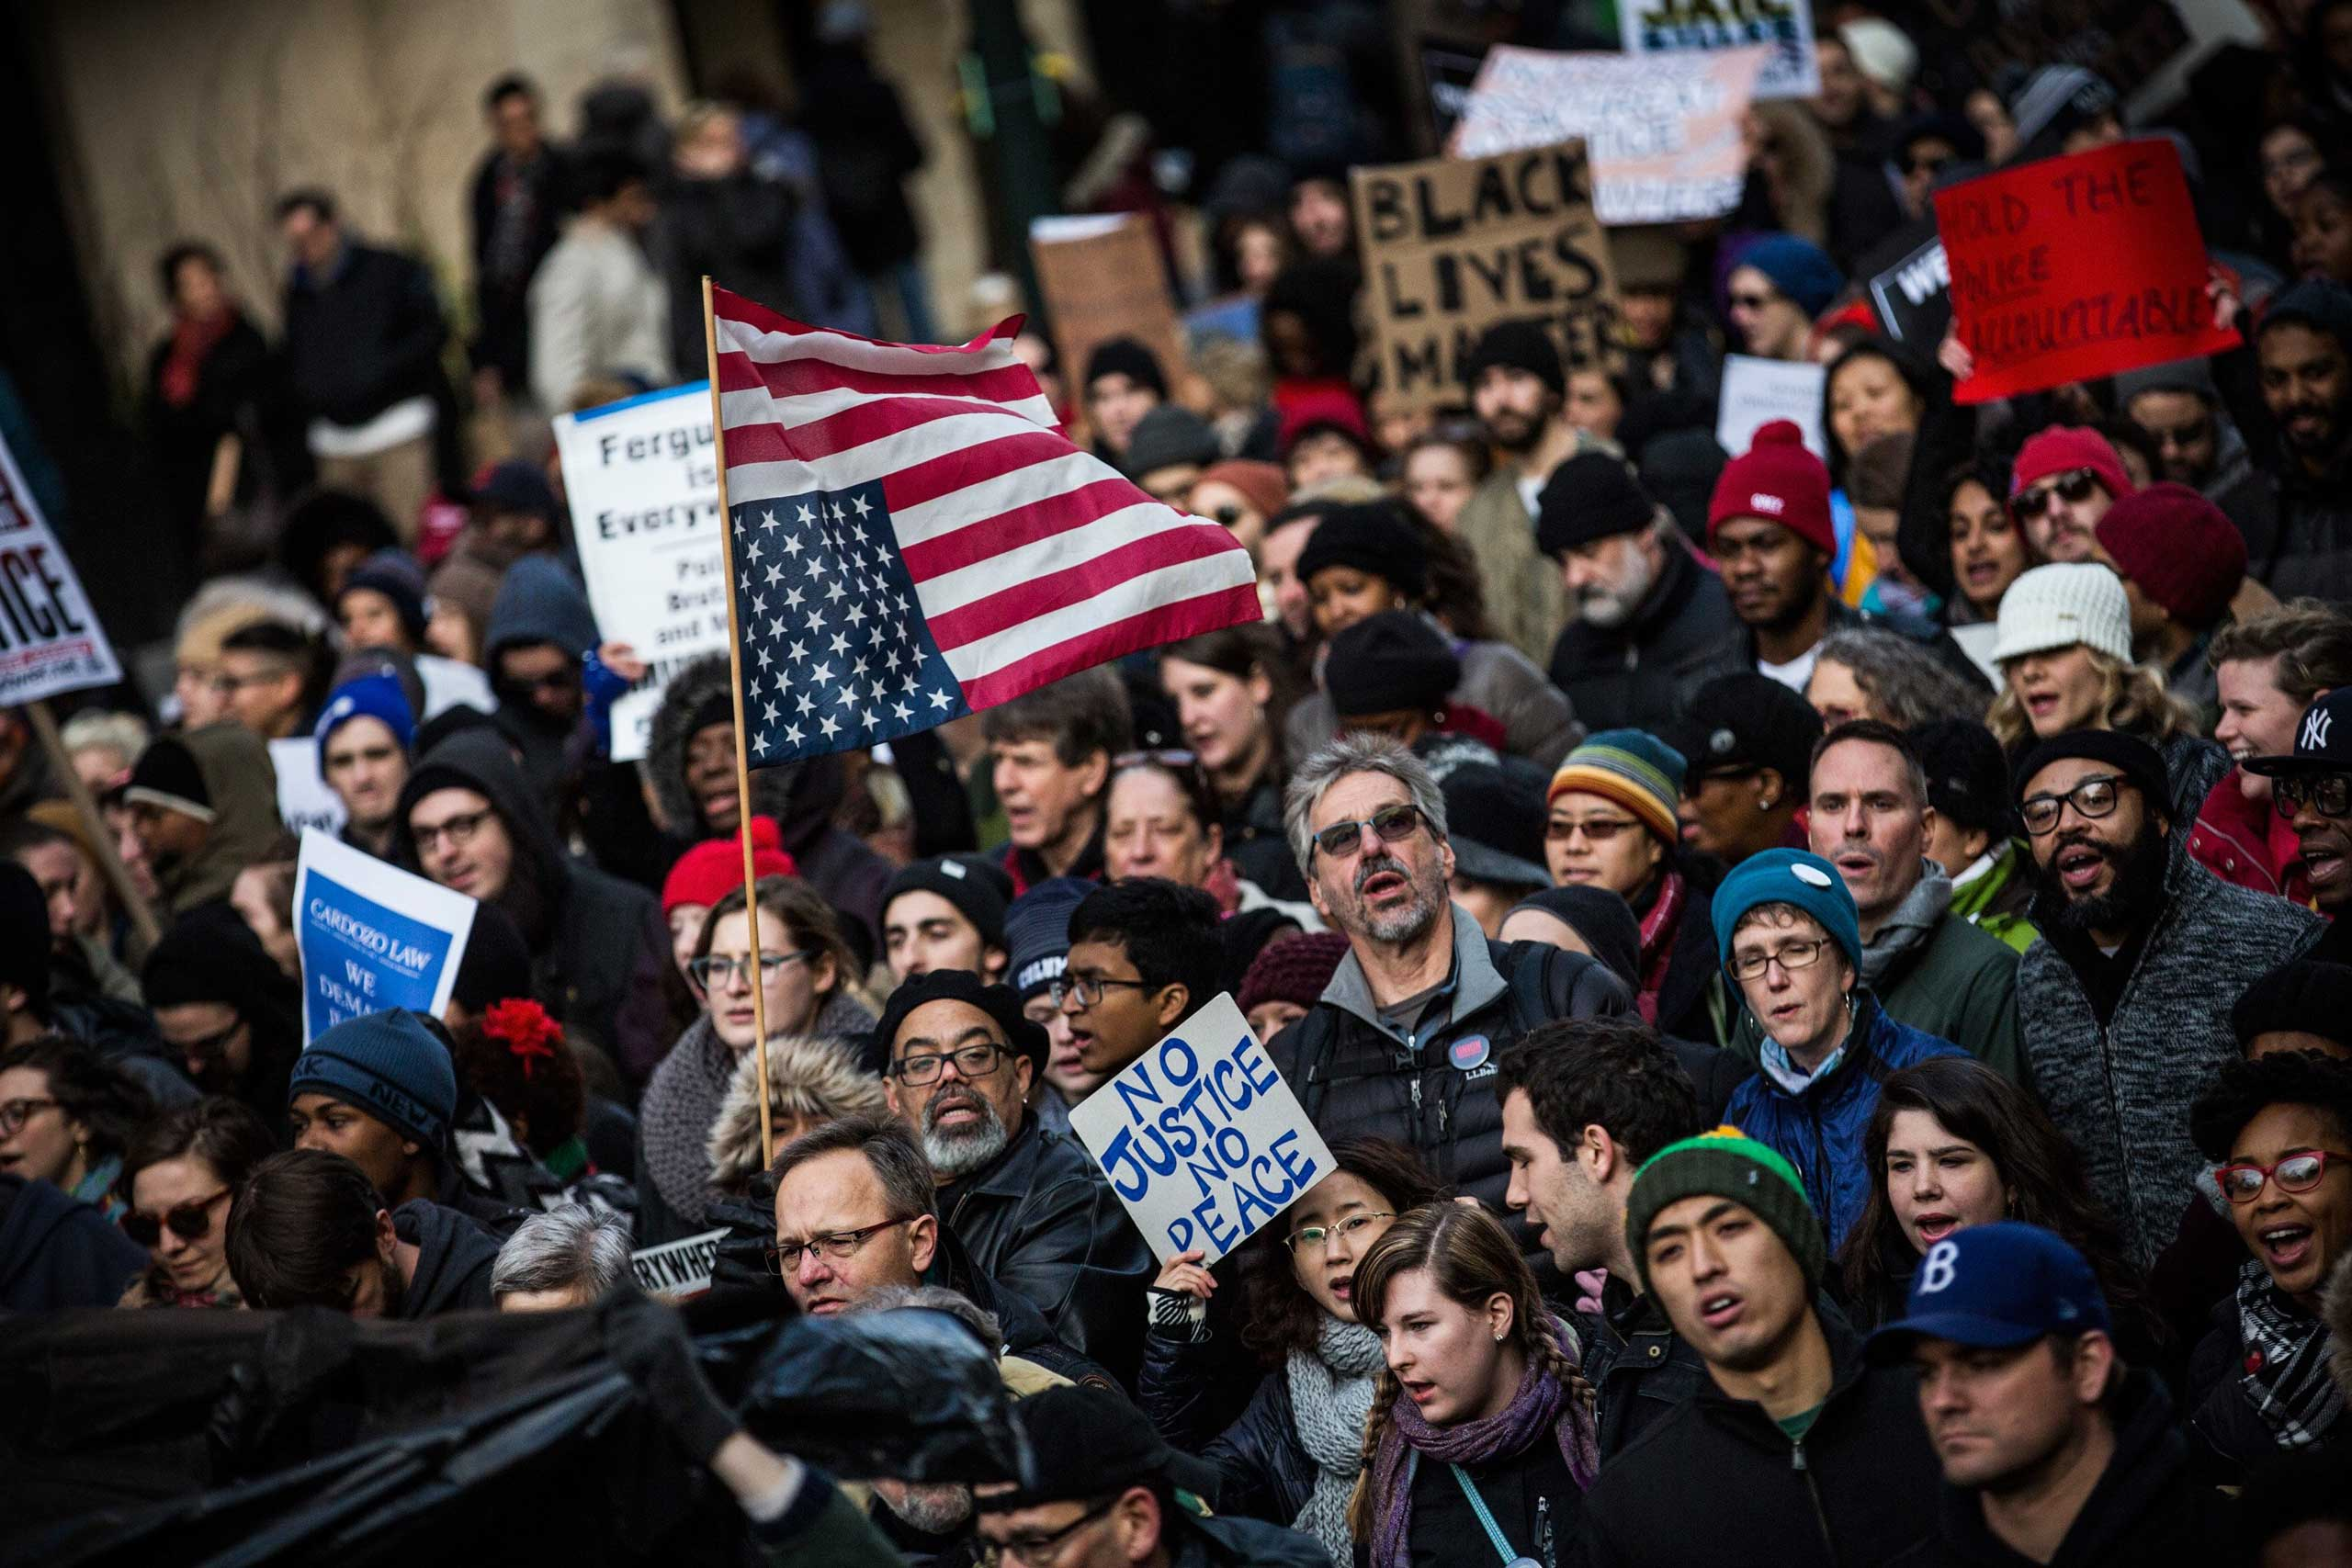 People march in the National March Against Police Violence on Dec. 13, 2014 in New York City.